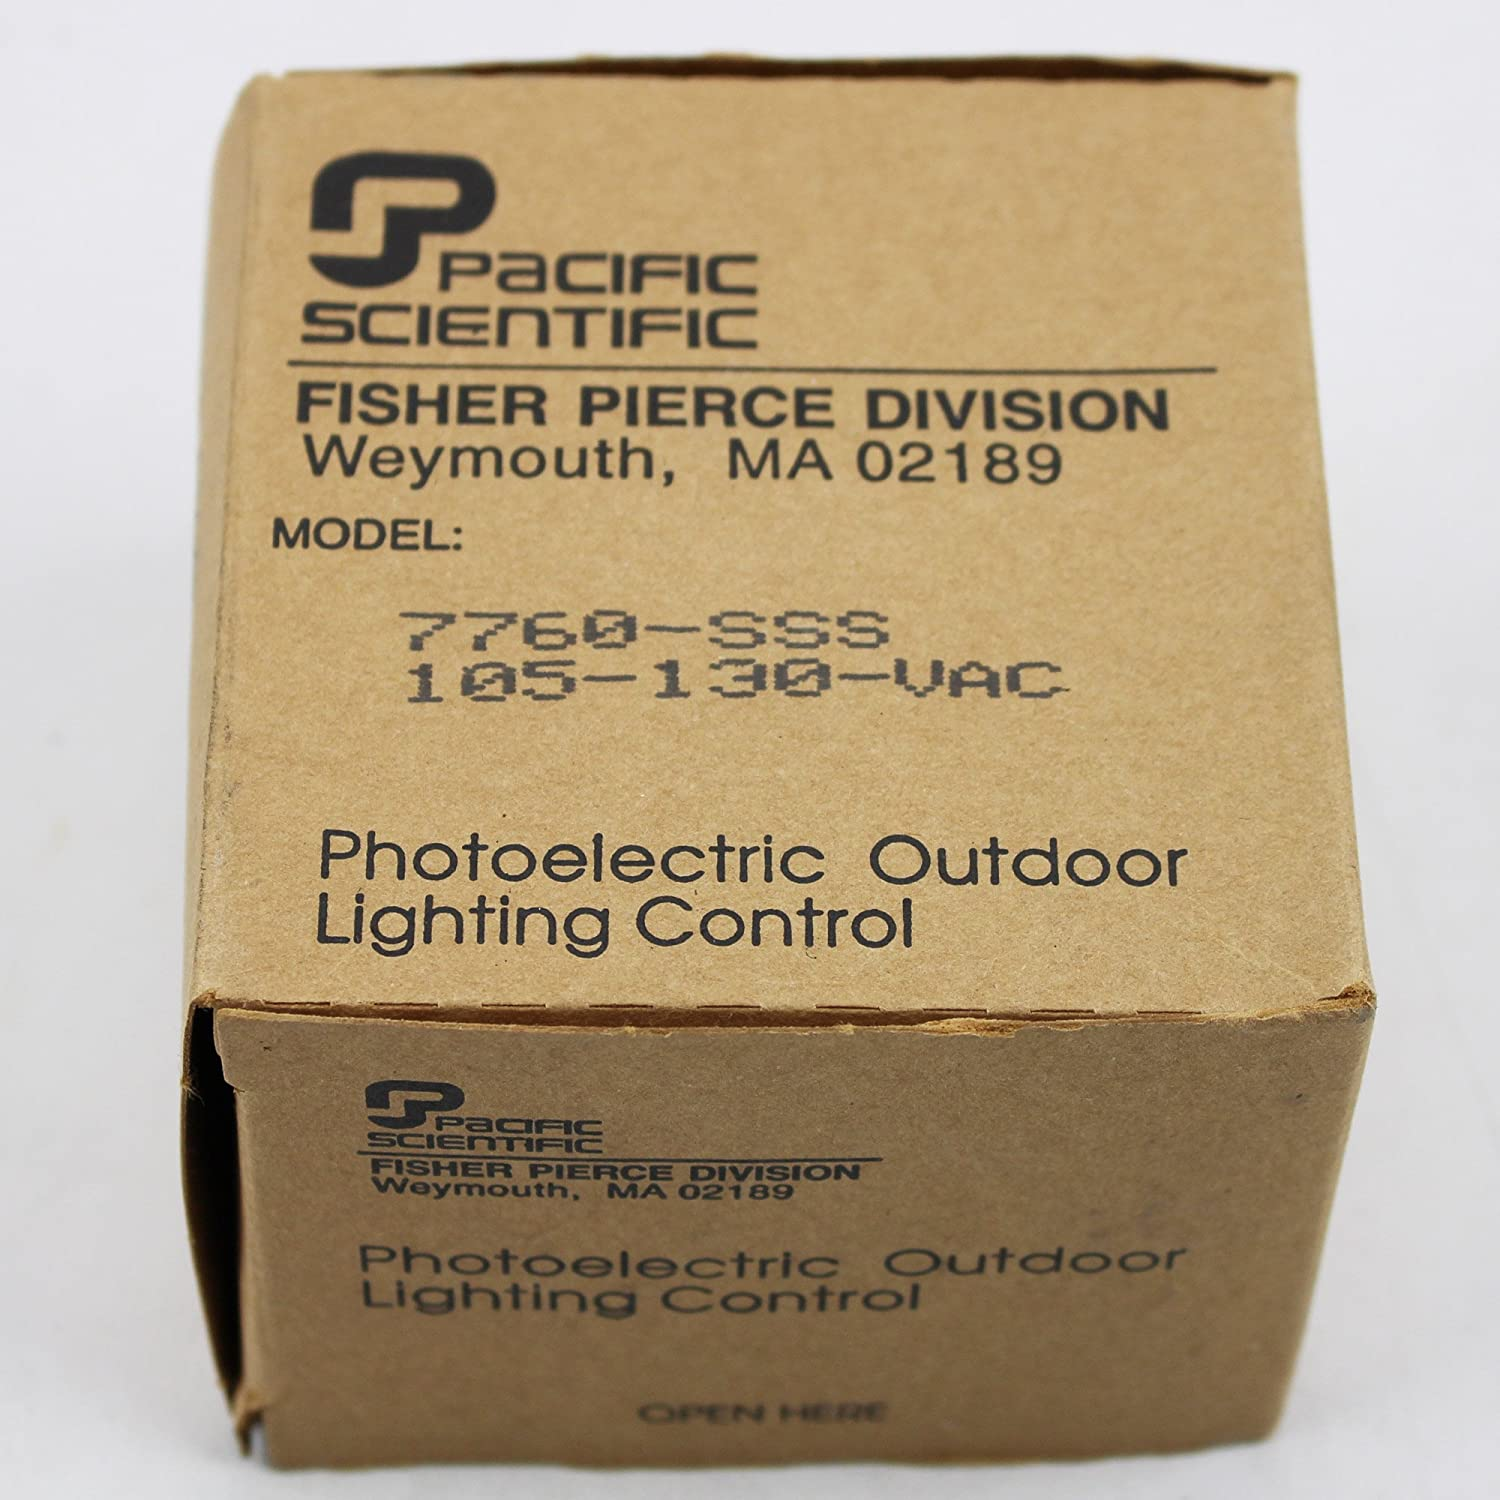 Pacific Scientific Photoelectric Outdoor Lighting Control Model # 7750-NSS